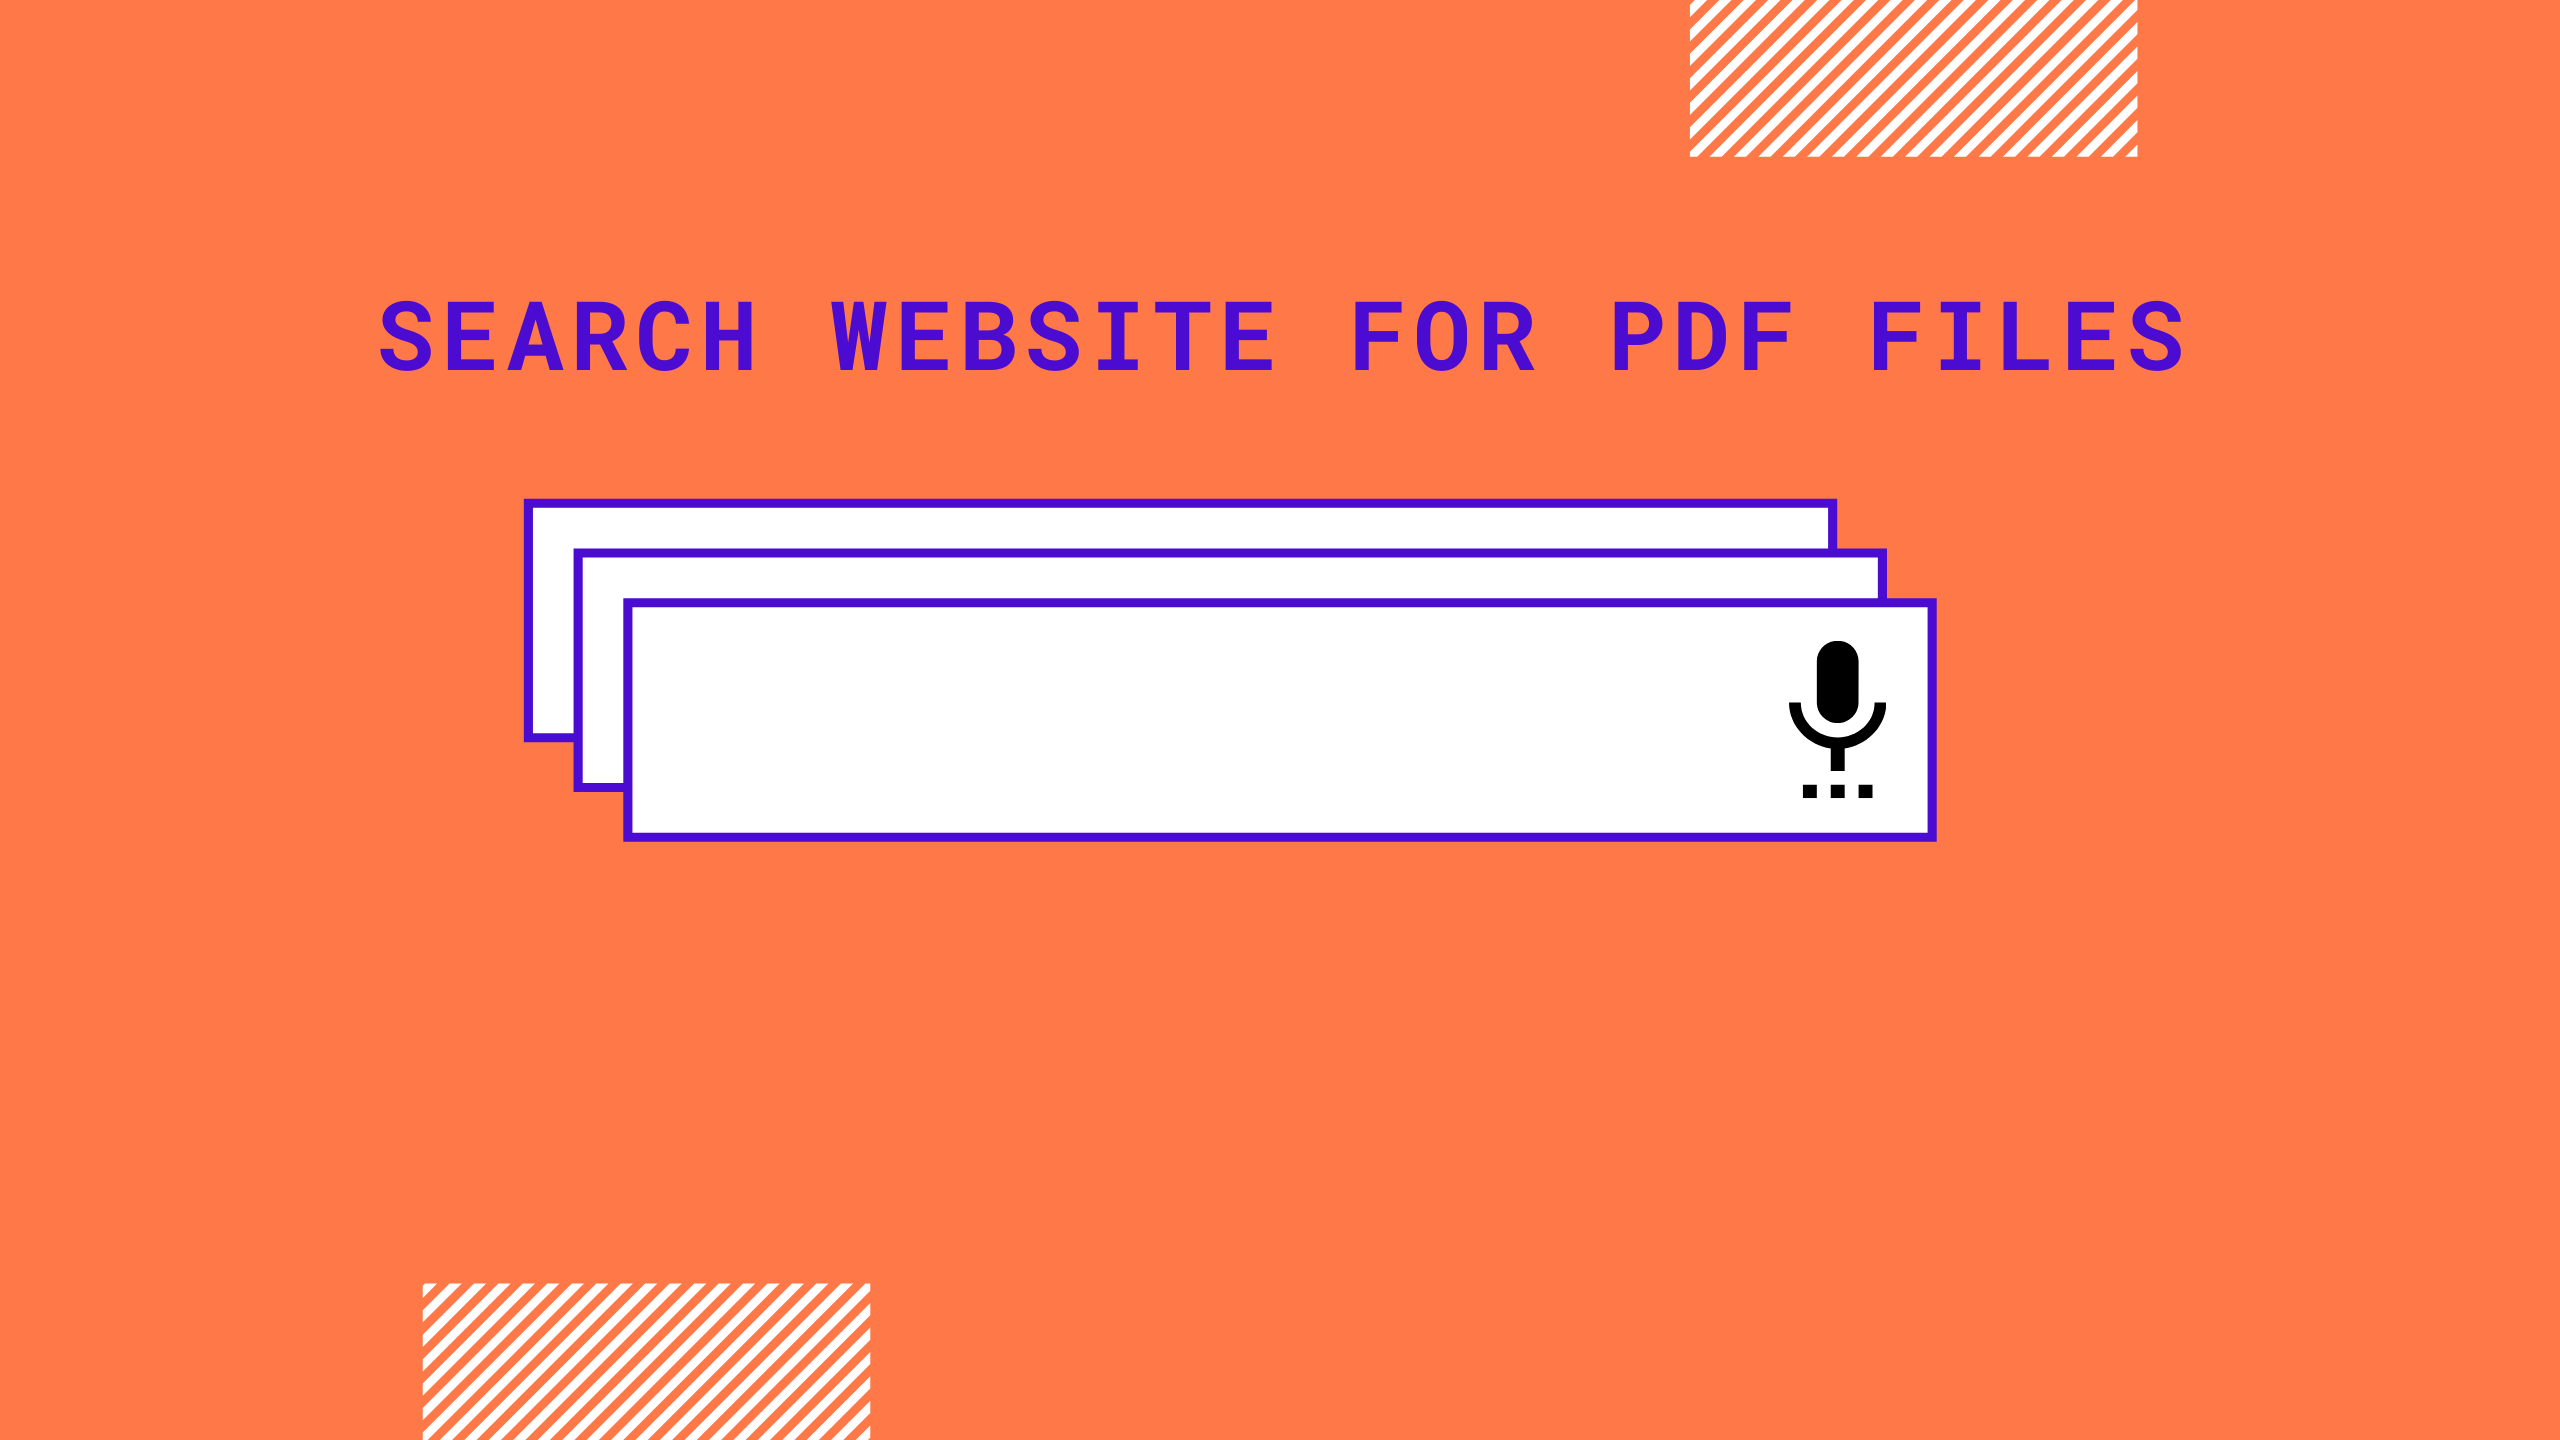 Search website for PDF files